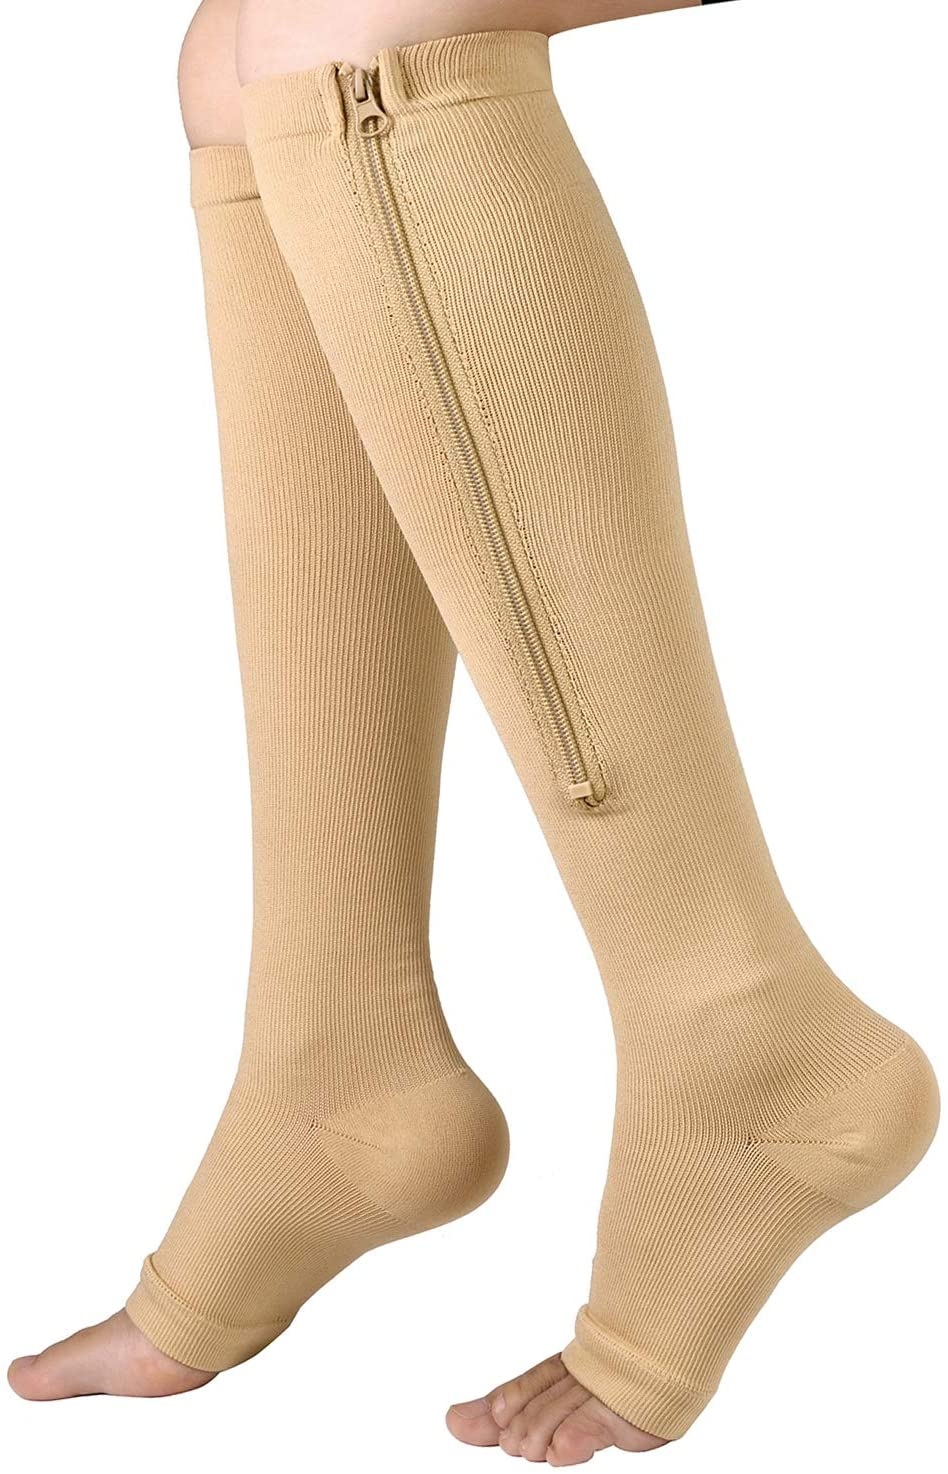 Zipper Compression Socks - 2Pairs Calf Knee High Stocking-Open Toe Compression Socks for Walking,Runnng,Hiking and Sports Use (B- Nude, S/M)